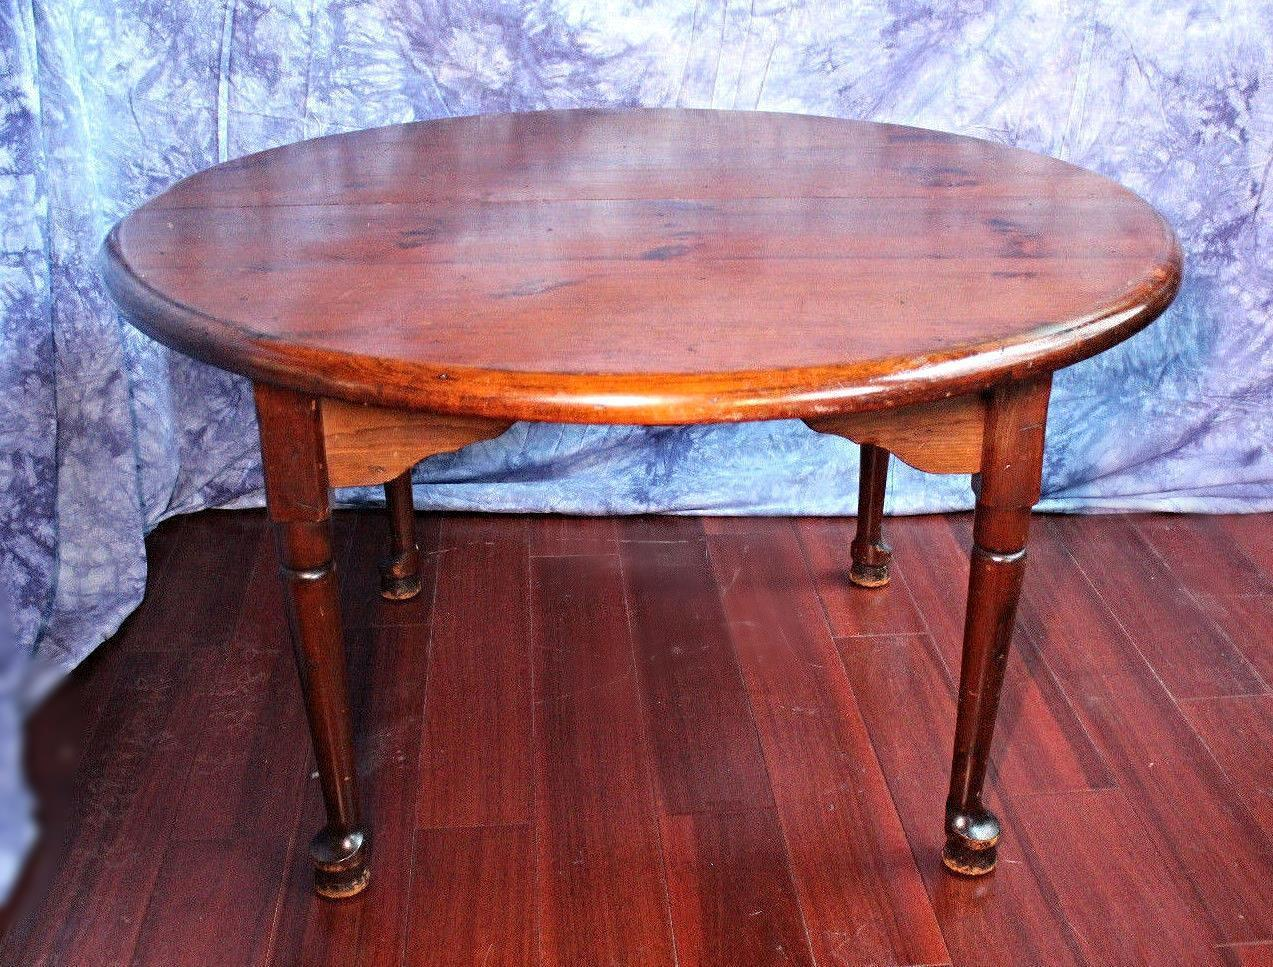 Antique Queen Anne Style Round Extension Dining Table  : antique queen anne style round extension dining table 6482aspectfitampwidth640ampheight640 from www.chairish.com size 640 x 640 jpeg 63kB